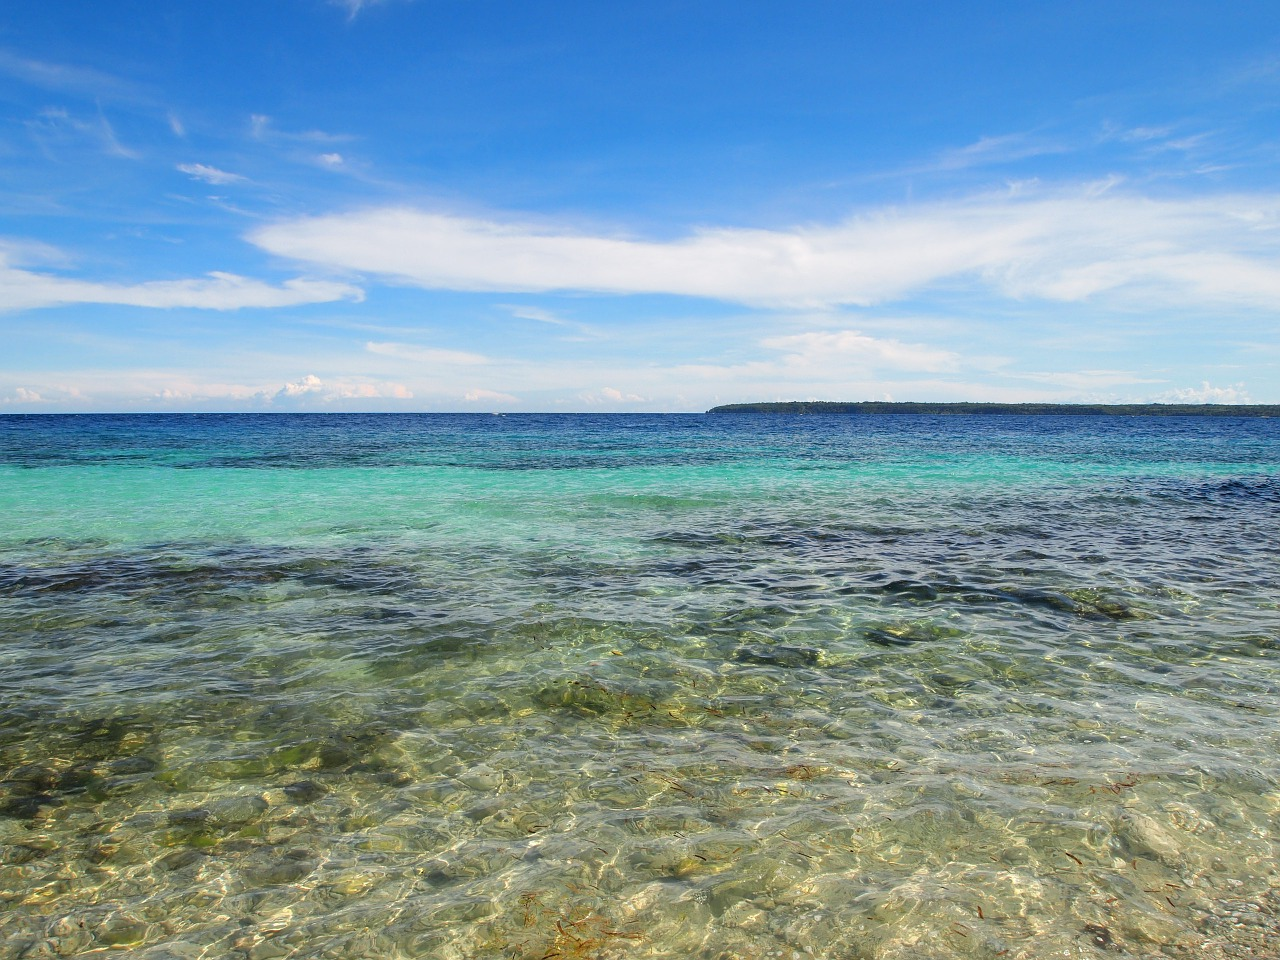 A Beach Lover's Guide to Island Hopping in Cebu